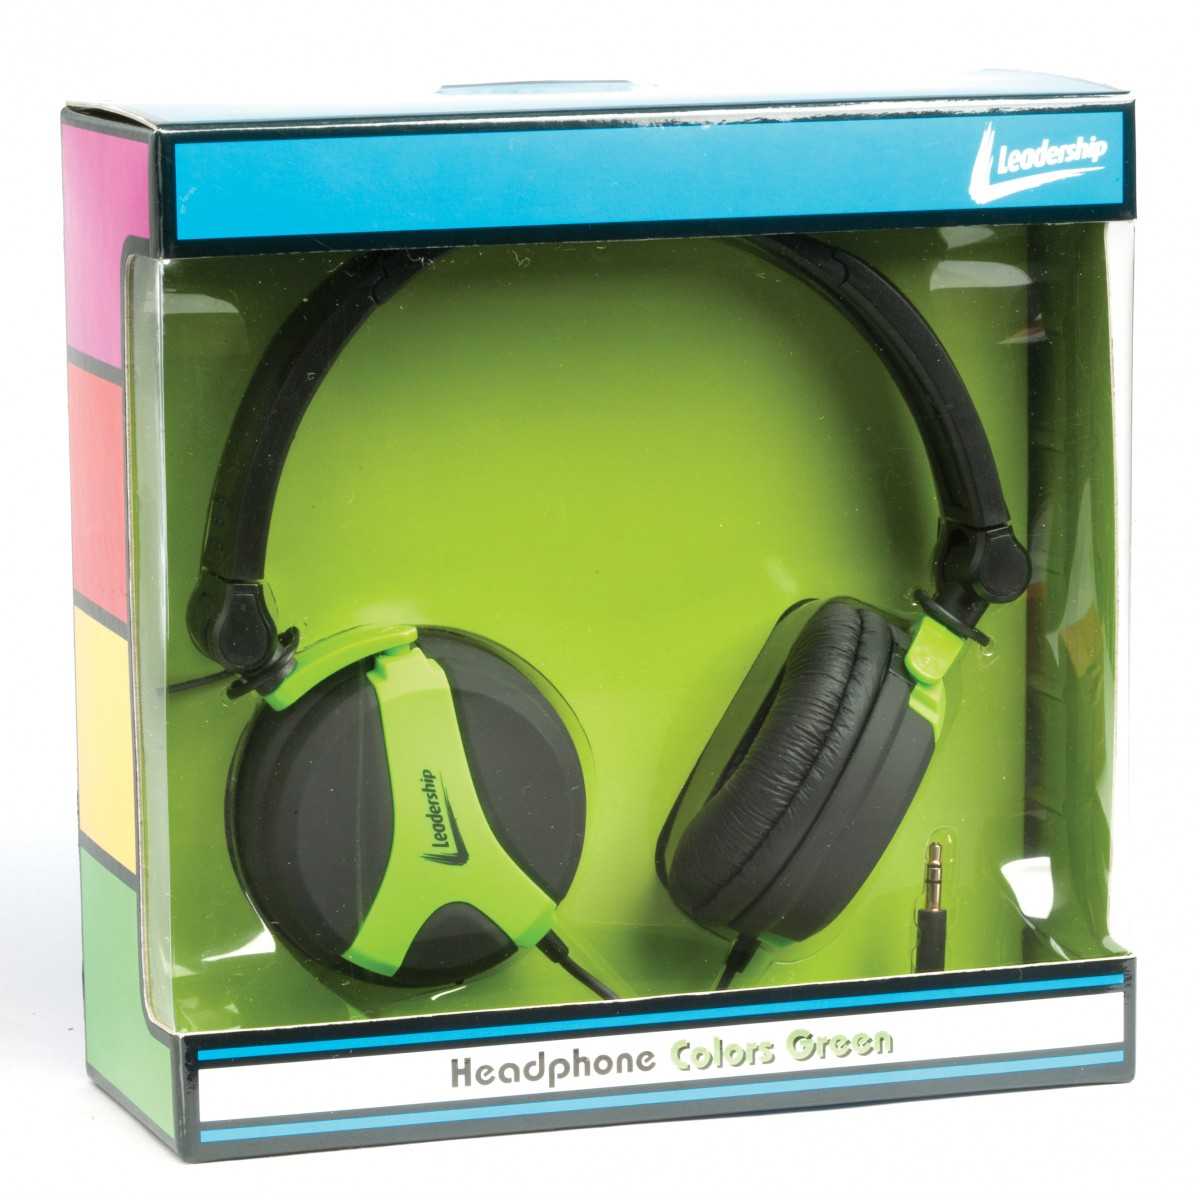 Headphone colors verde 2773 - Leadership